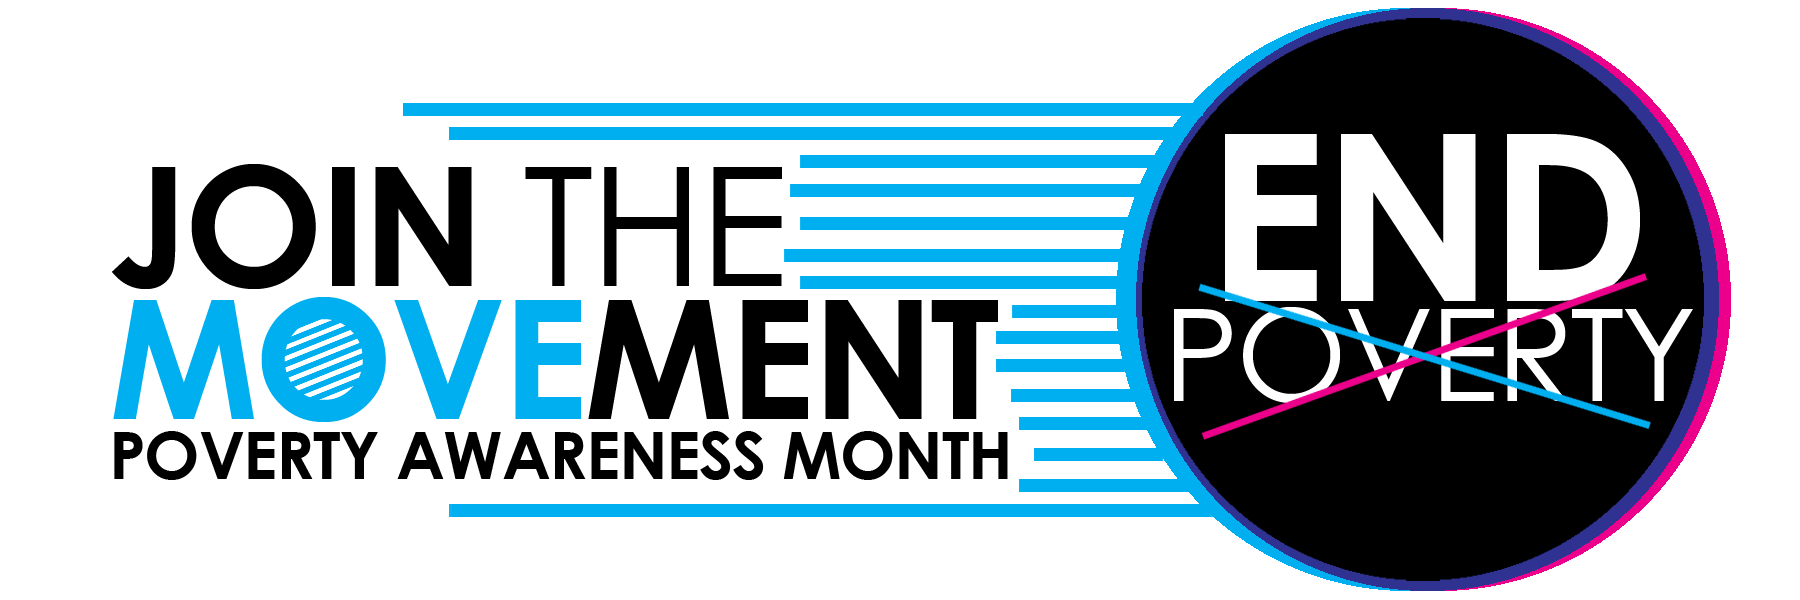 Poverty Awareness Month 2015